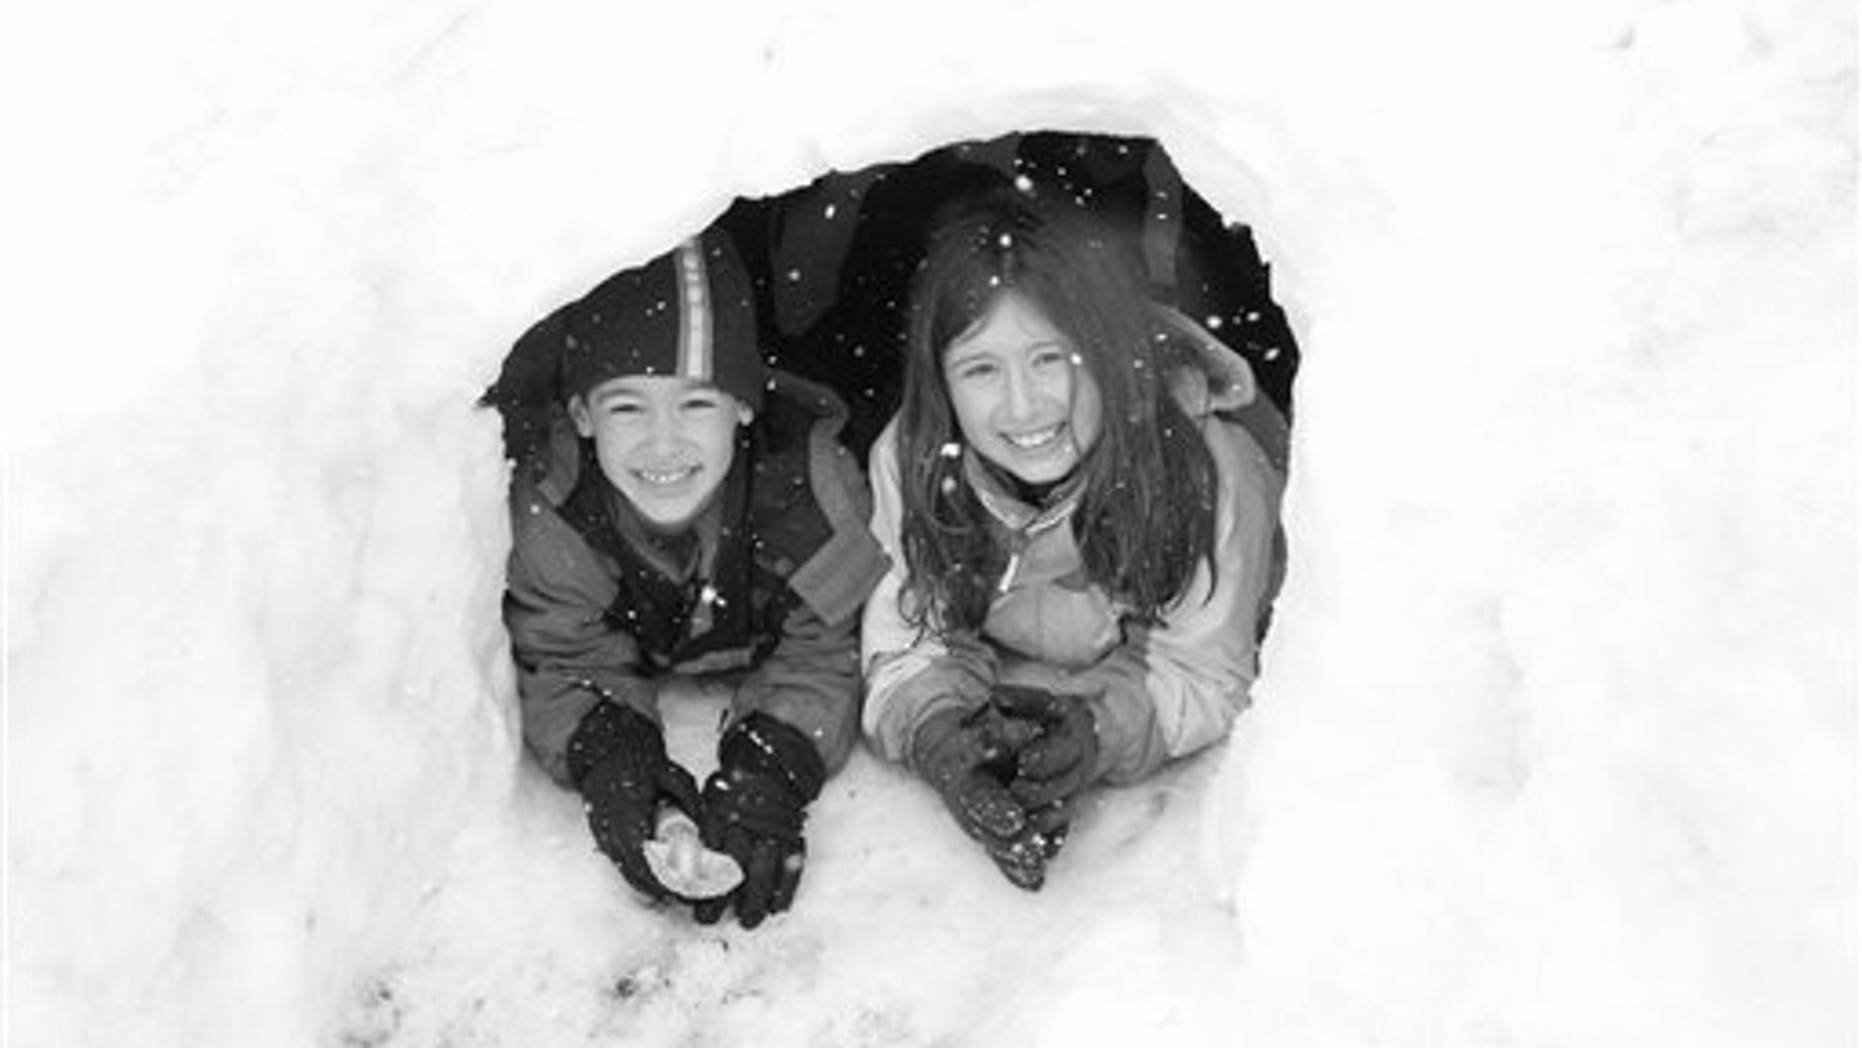 Feb. 26, 2010: Friedlander family photo shows Gregory and Molly Friedlander play in the snow at their home in Cross River, N.Y.